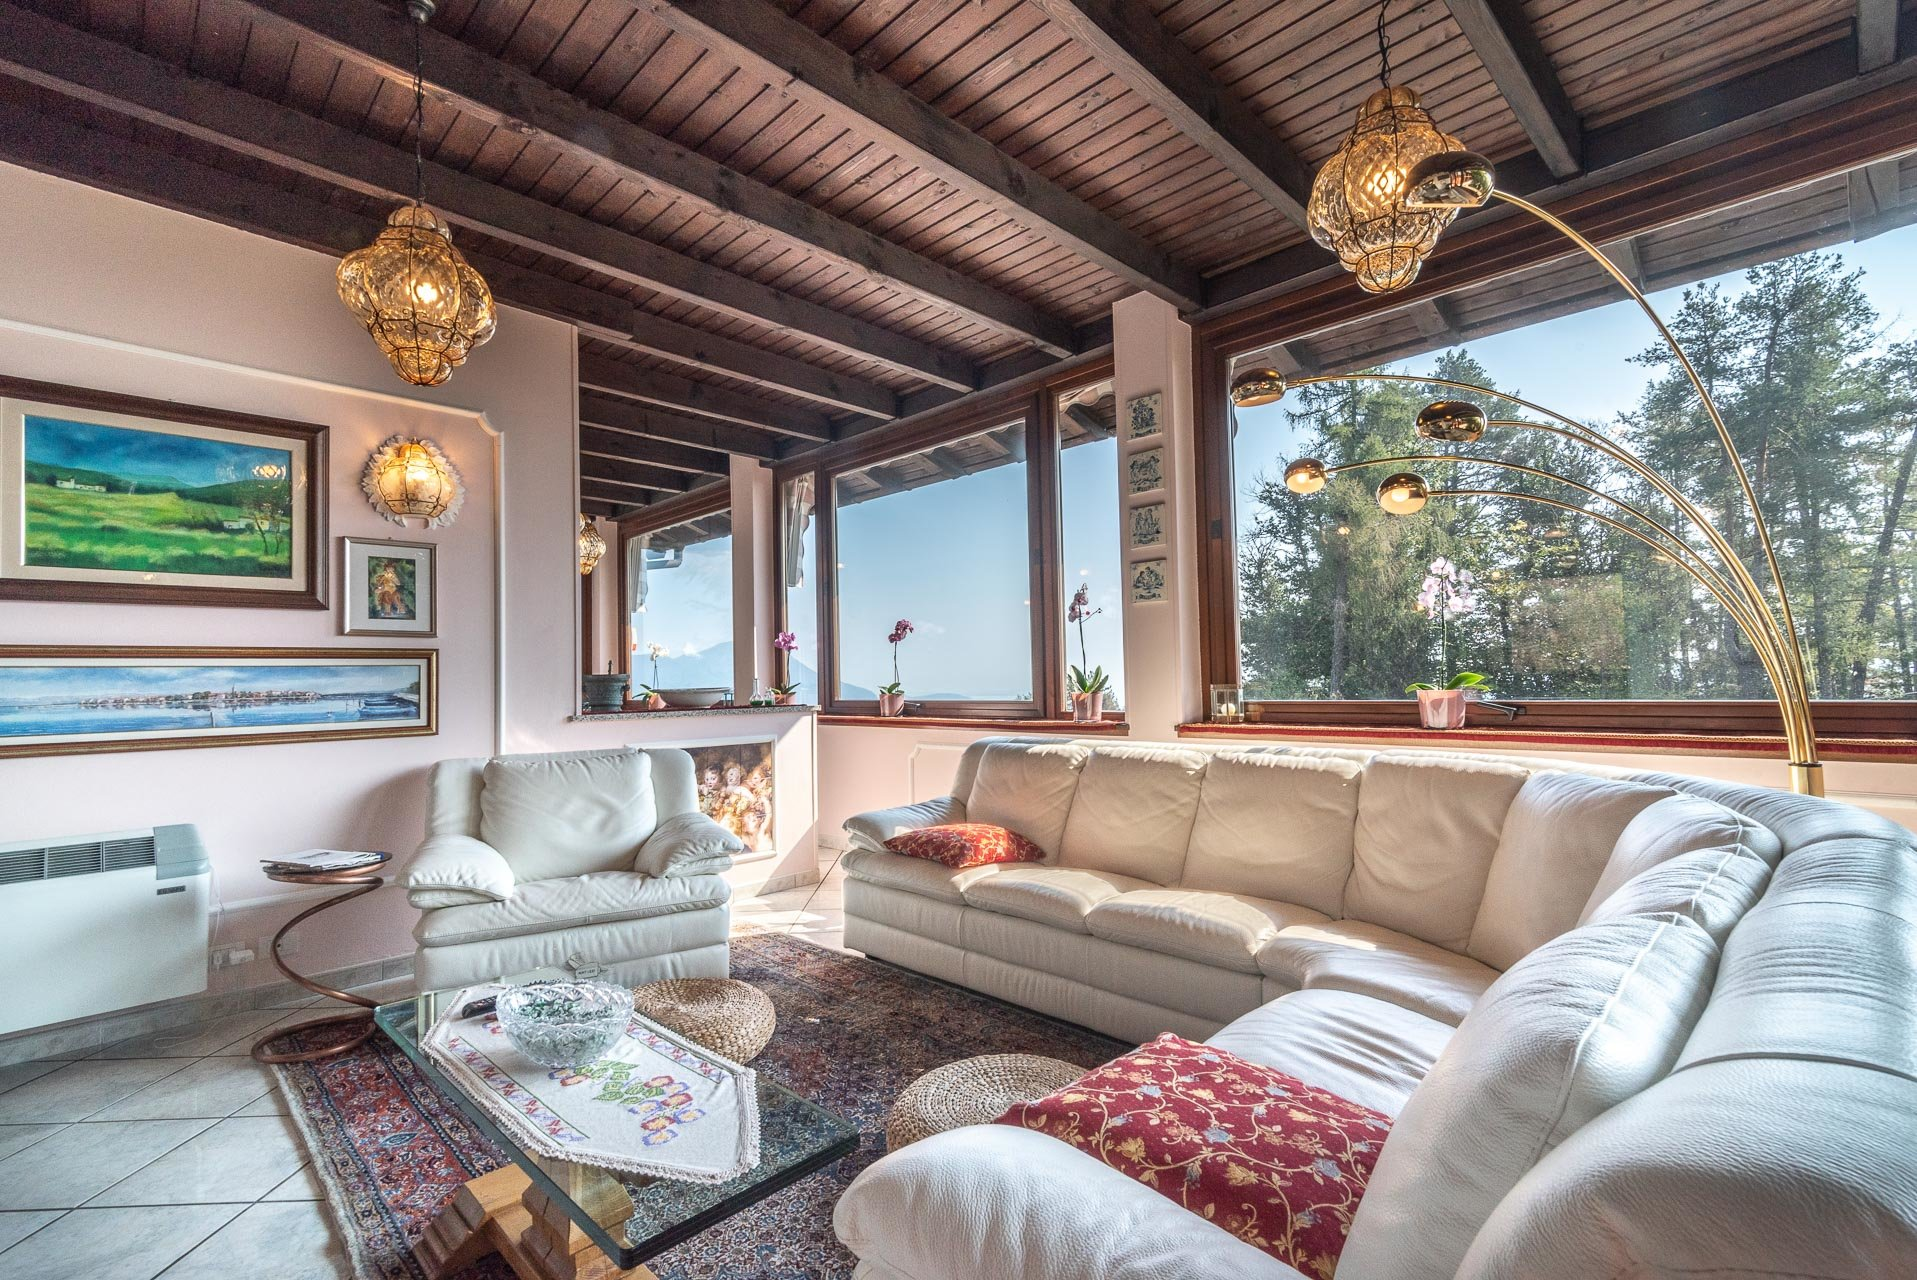 Villa for sale in Bee, with wonderful lake view - living room